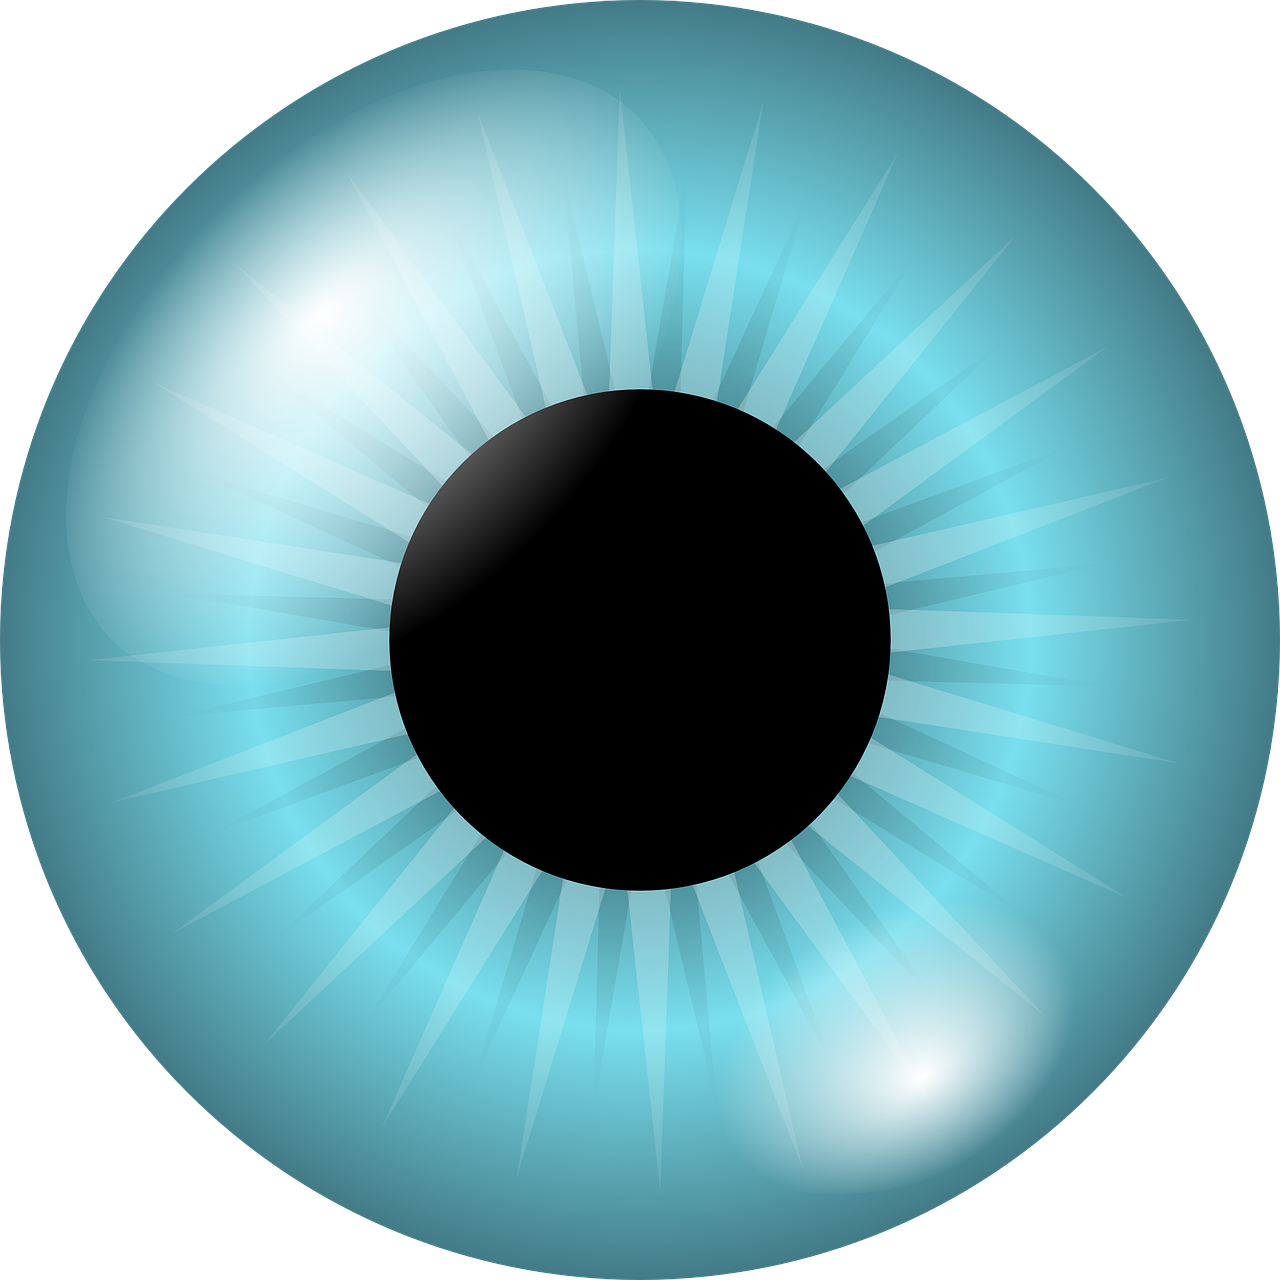 eyeball,iris,pupil,blue,eyes,vision,view,look,see,eyesight,color,optic,retina,cornea,focus,visual,free vector graphics,free pictures, free photos, free images, royalty free, free illustrations, public domain